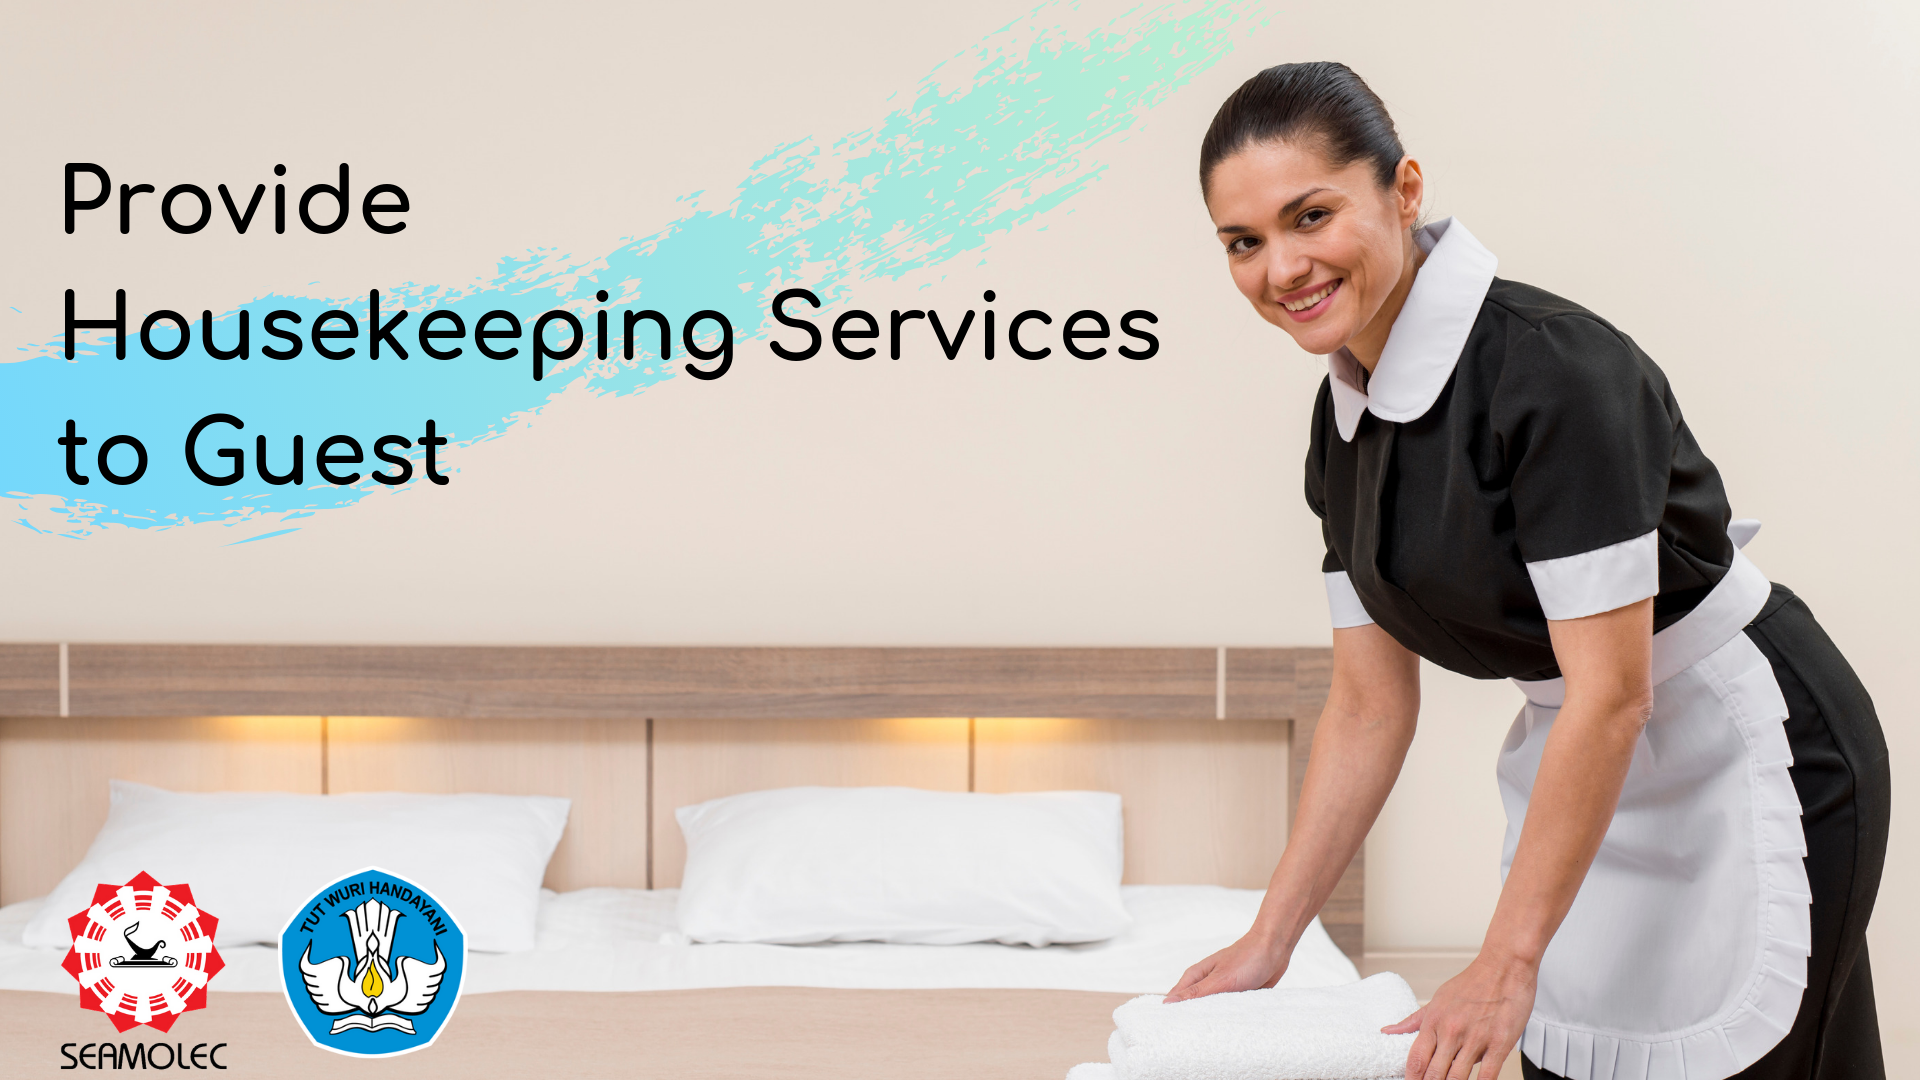 Provide Housekeeping Services to Guest HK_CATC_09